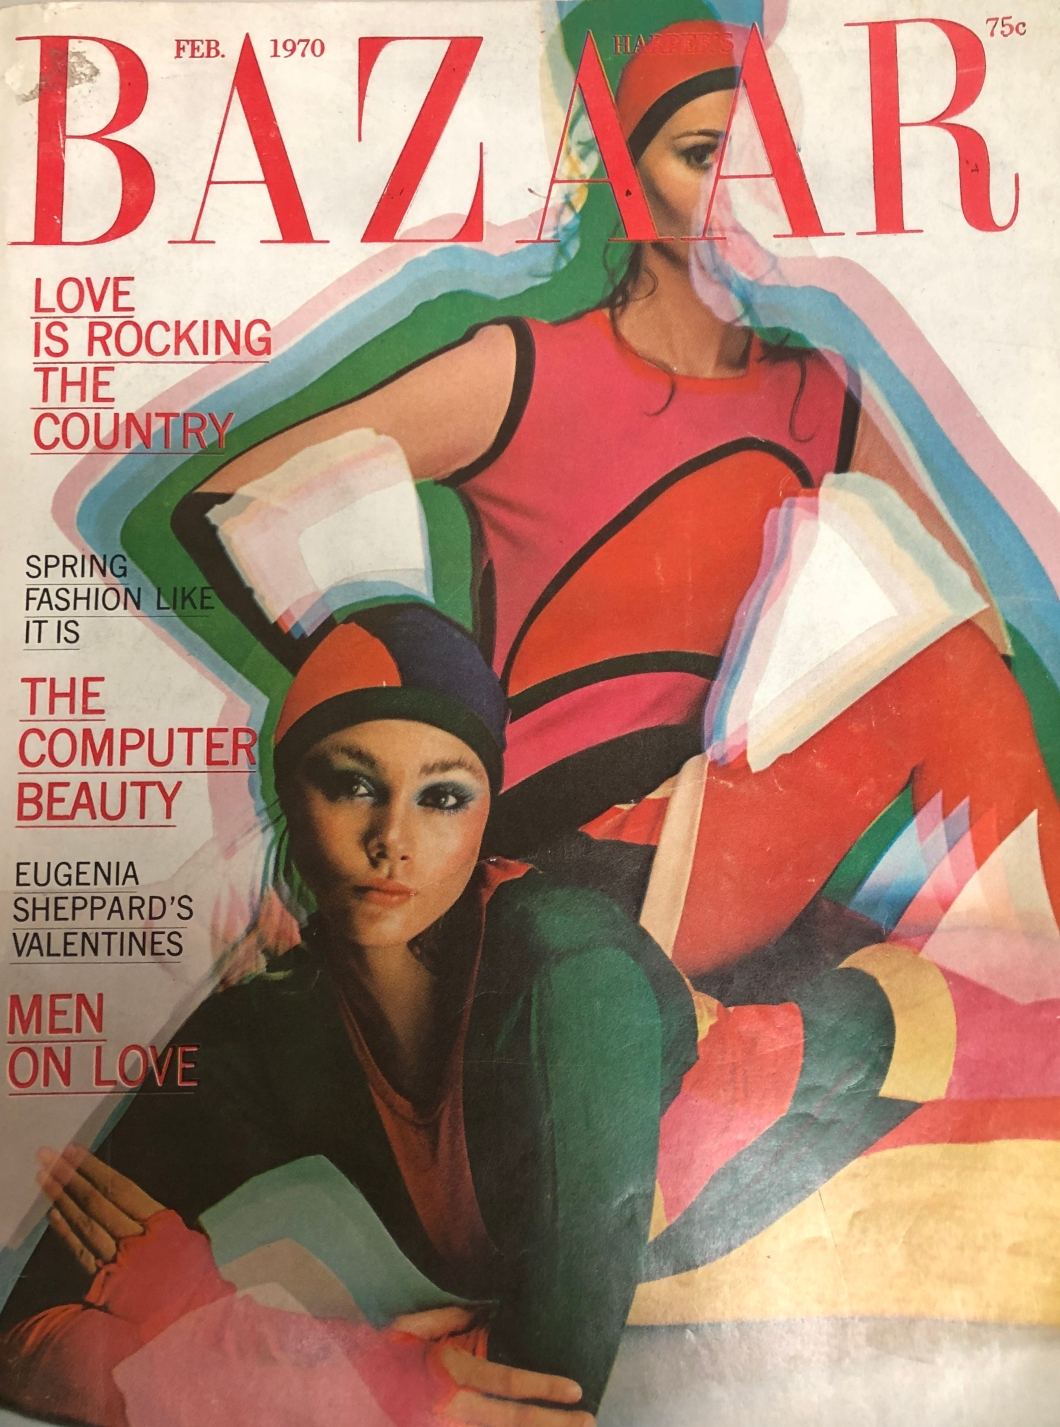 Vintage Fashion Magazine Cover Harper's Bazaar Feb 1970